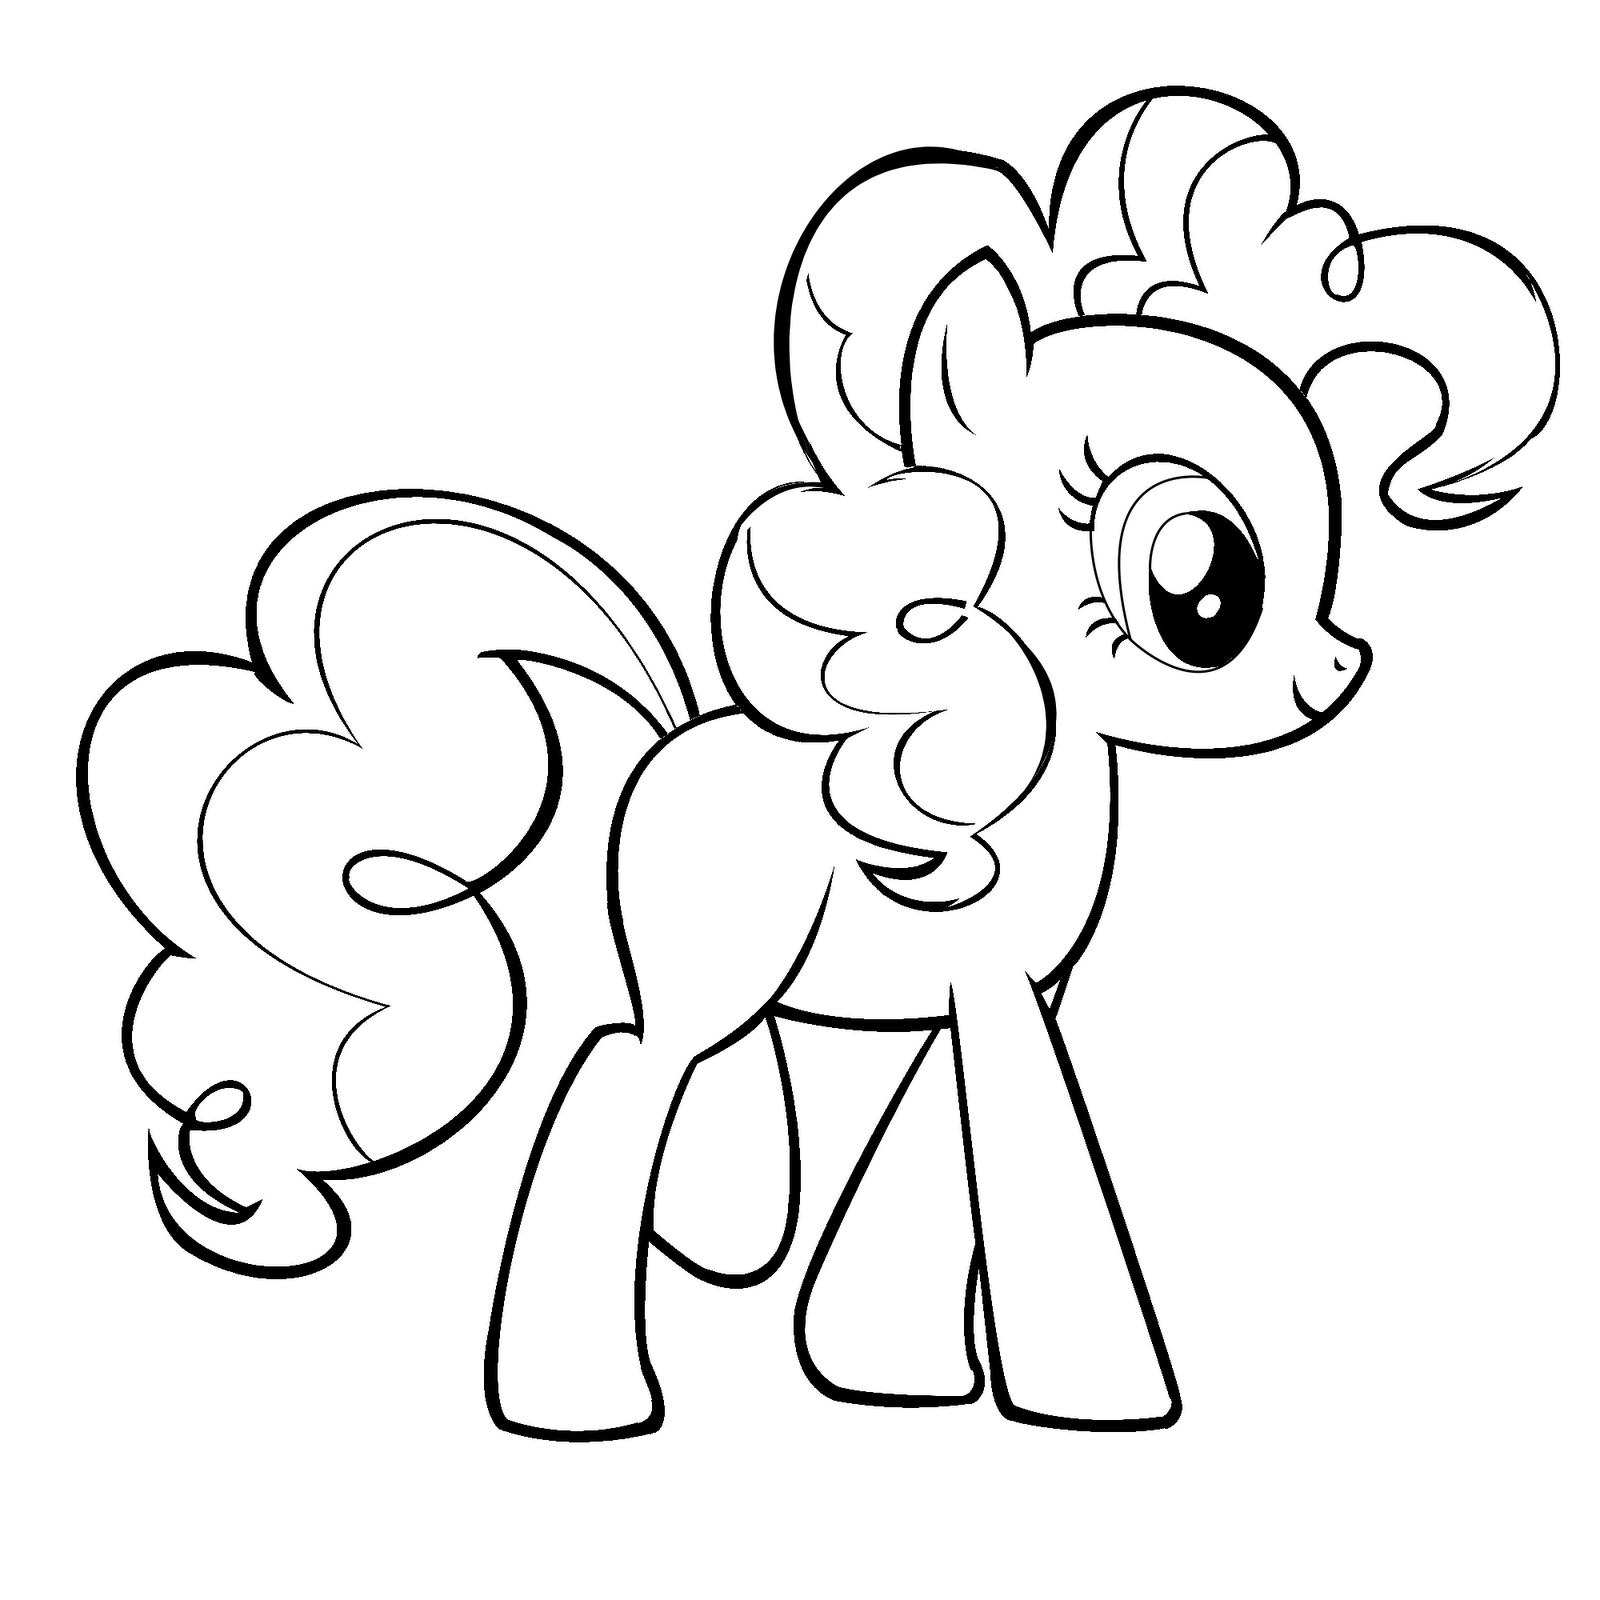 1600x1600 My Little Pony Friendship Is Magic Pinkie Pie Coloring Page Free